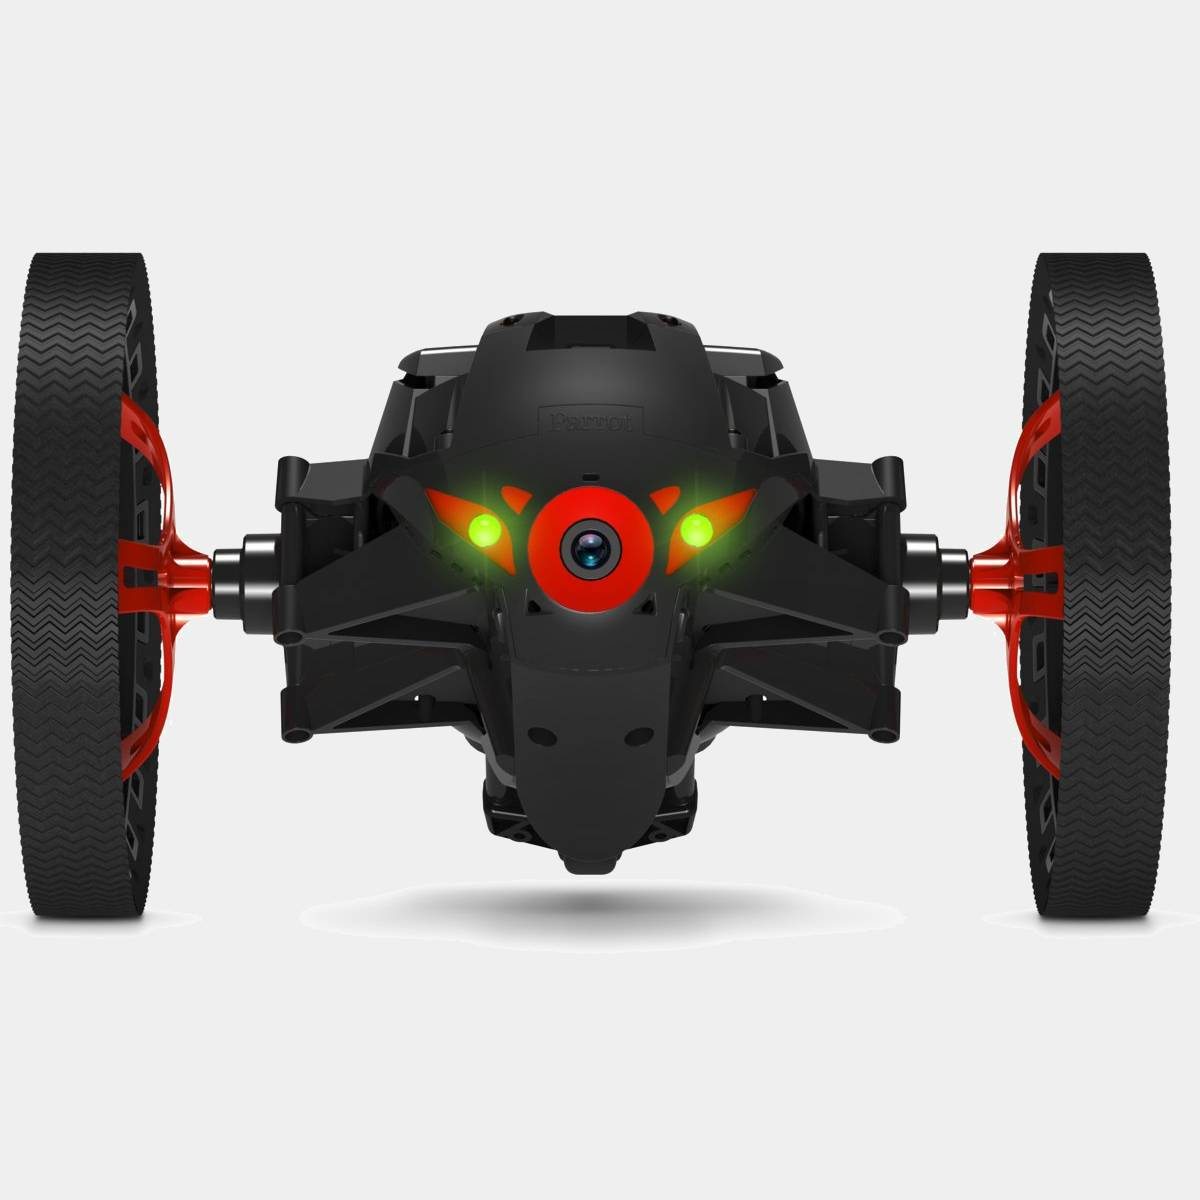 Drone Parrot Jumping Sumo negro Pf724001aa